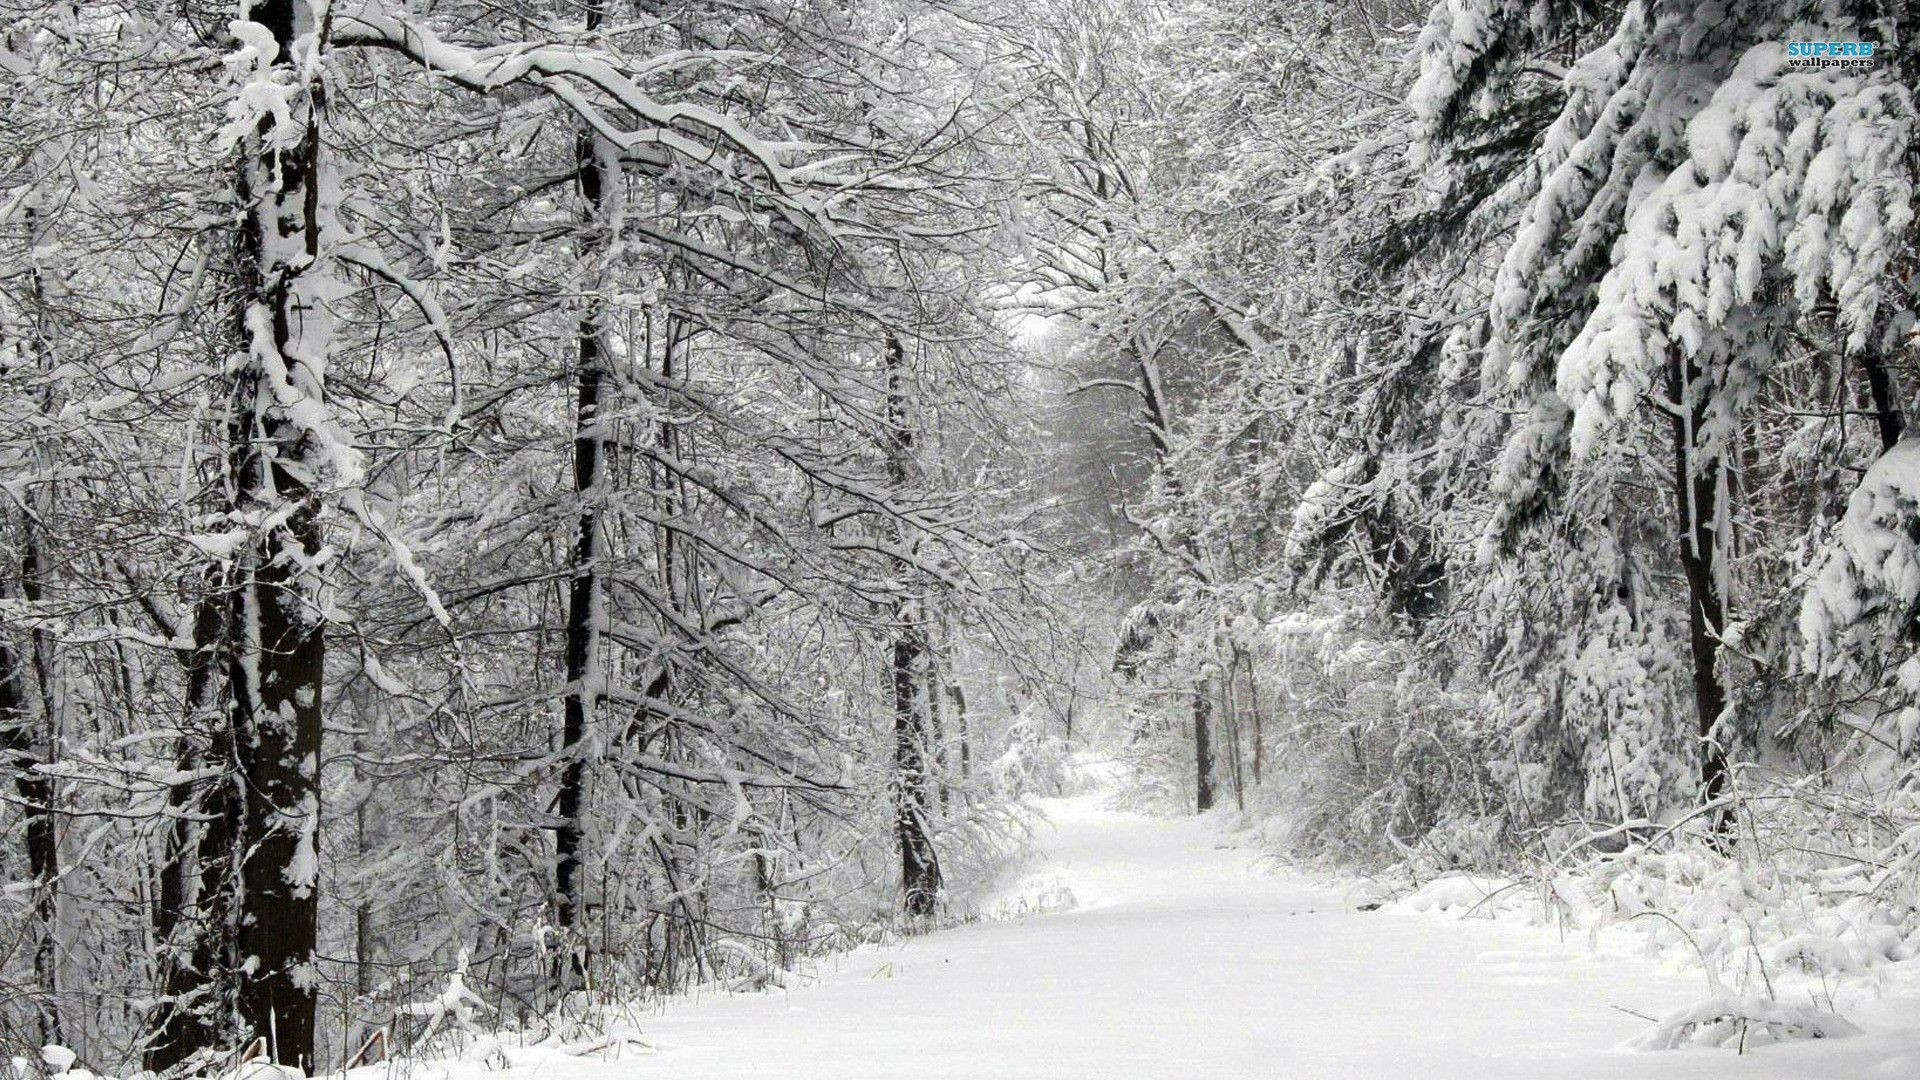 Explore Forest Wallpaper, Winter Snow, and more!